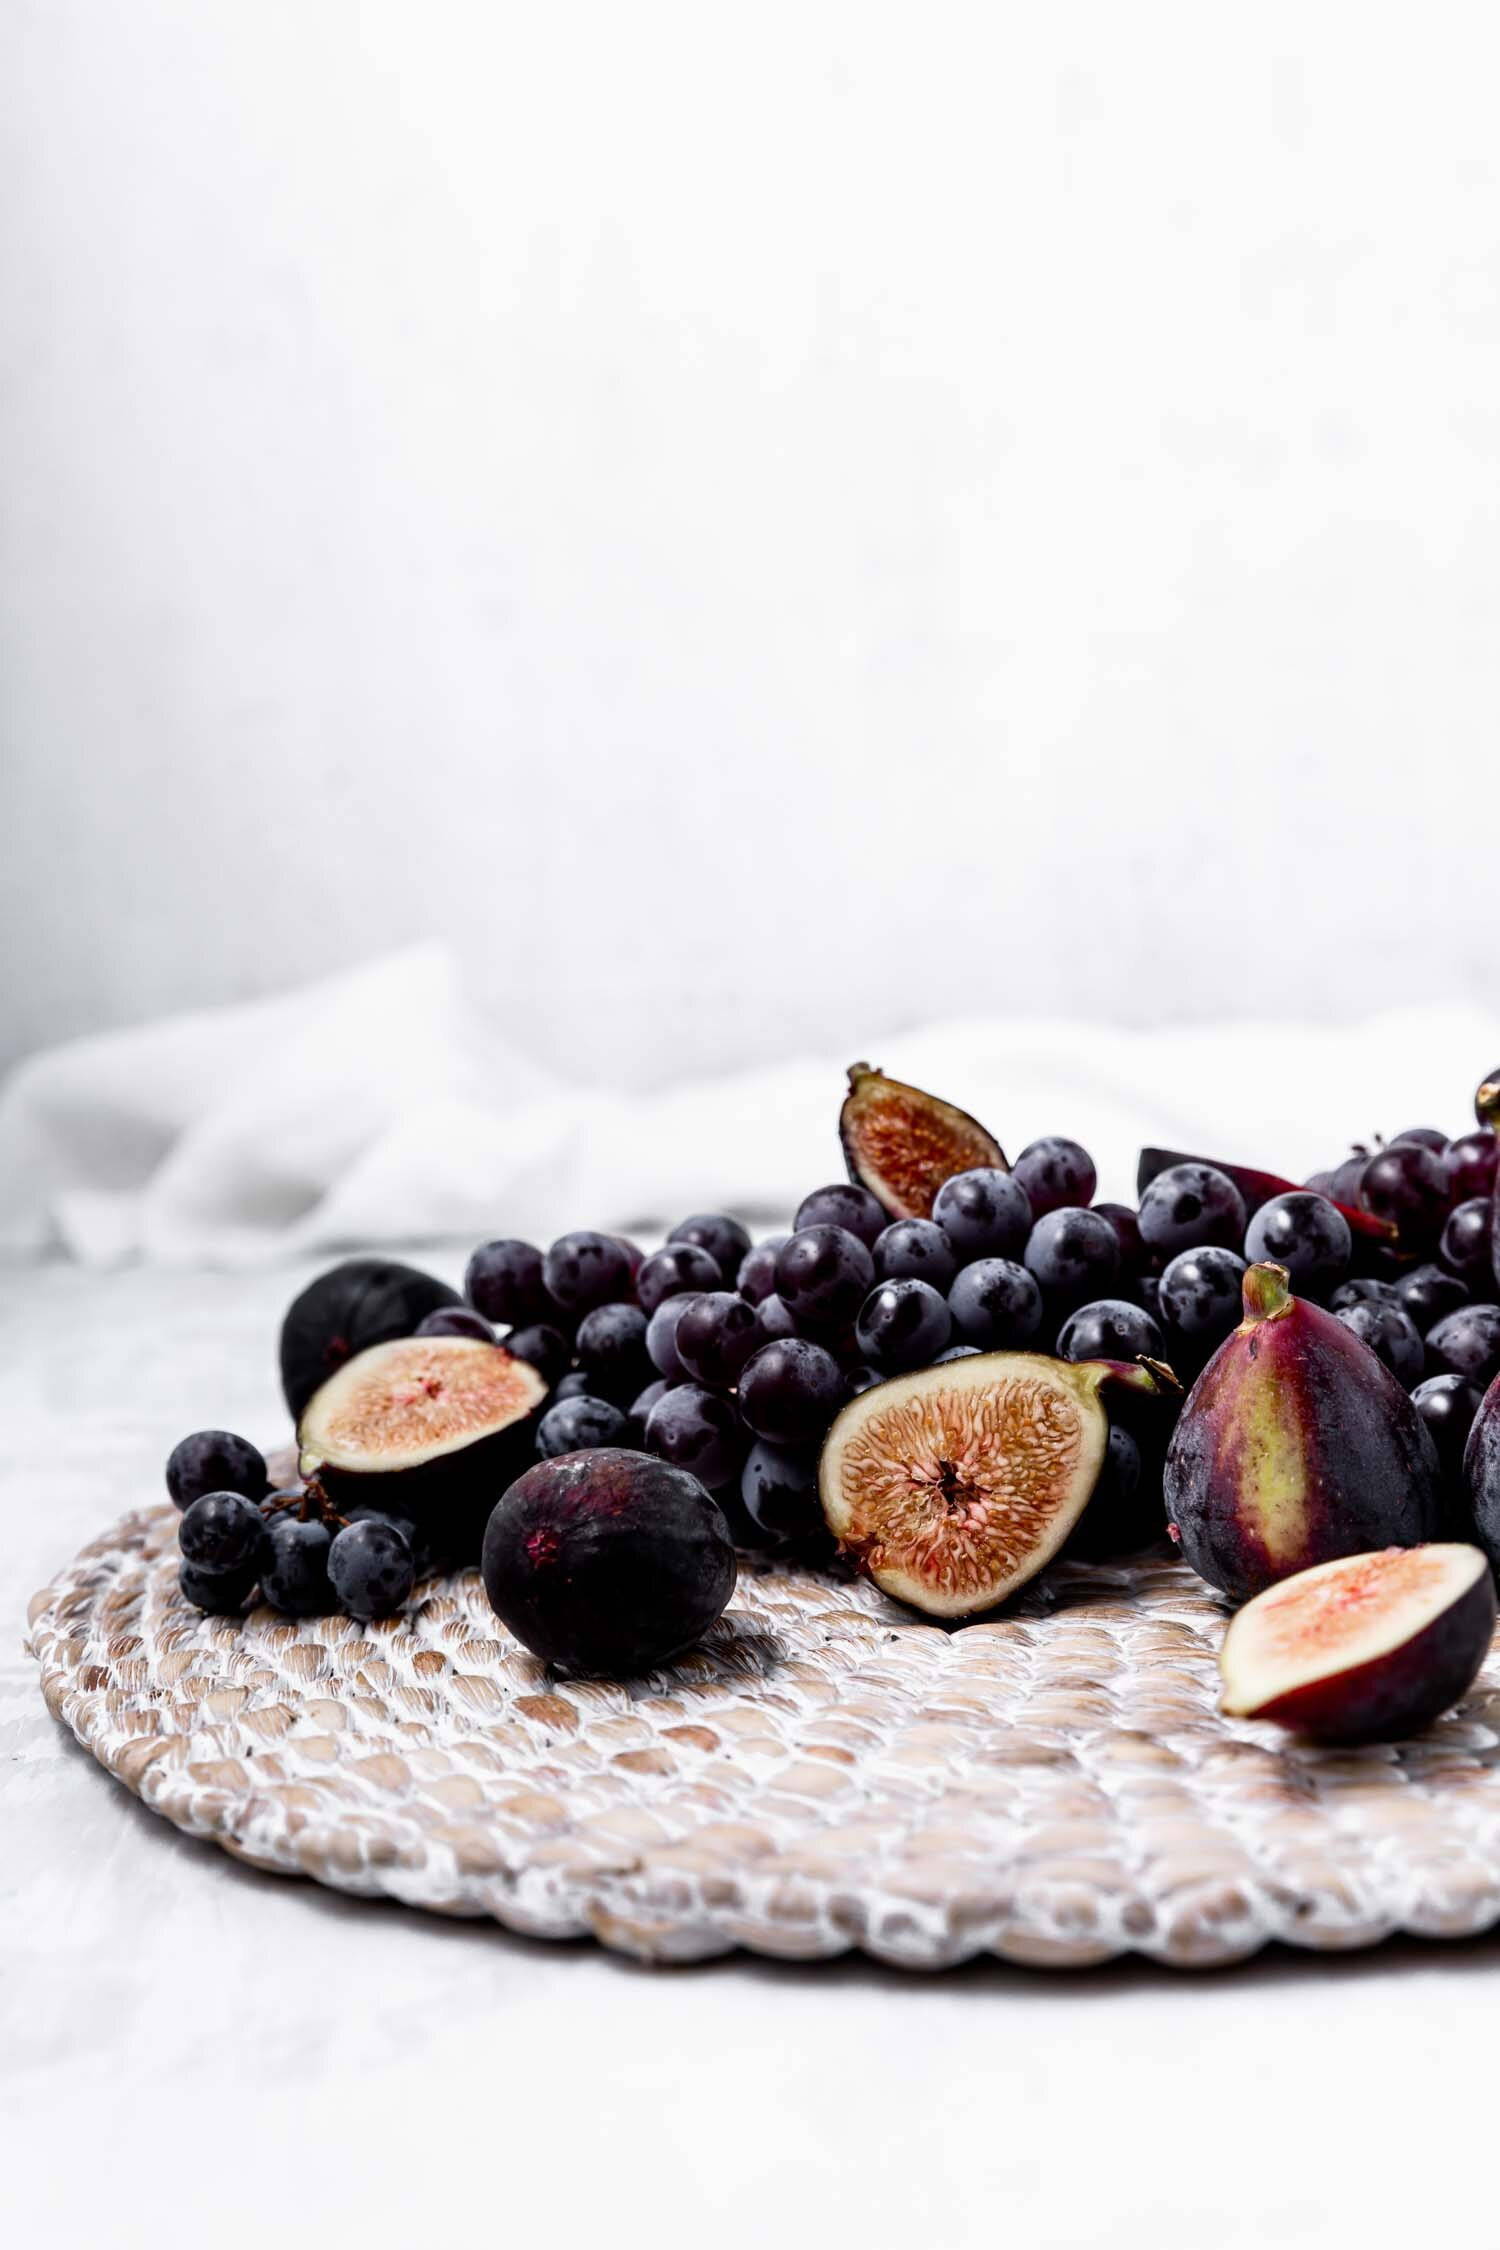 figs-and-grapes.jpg